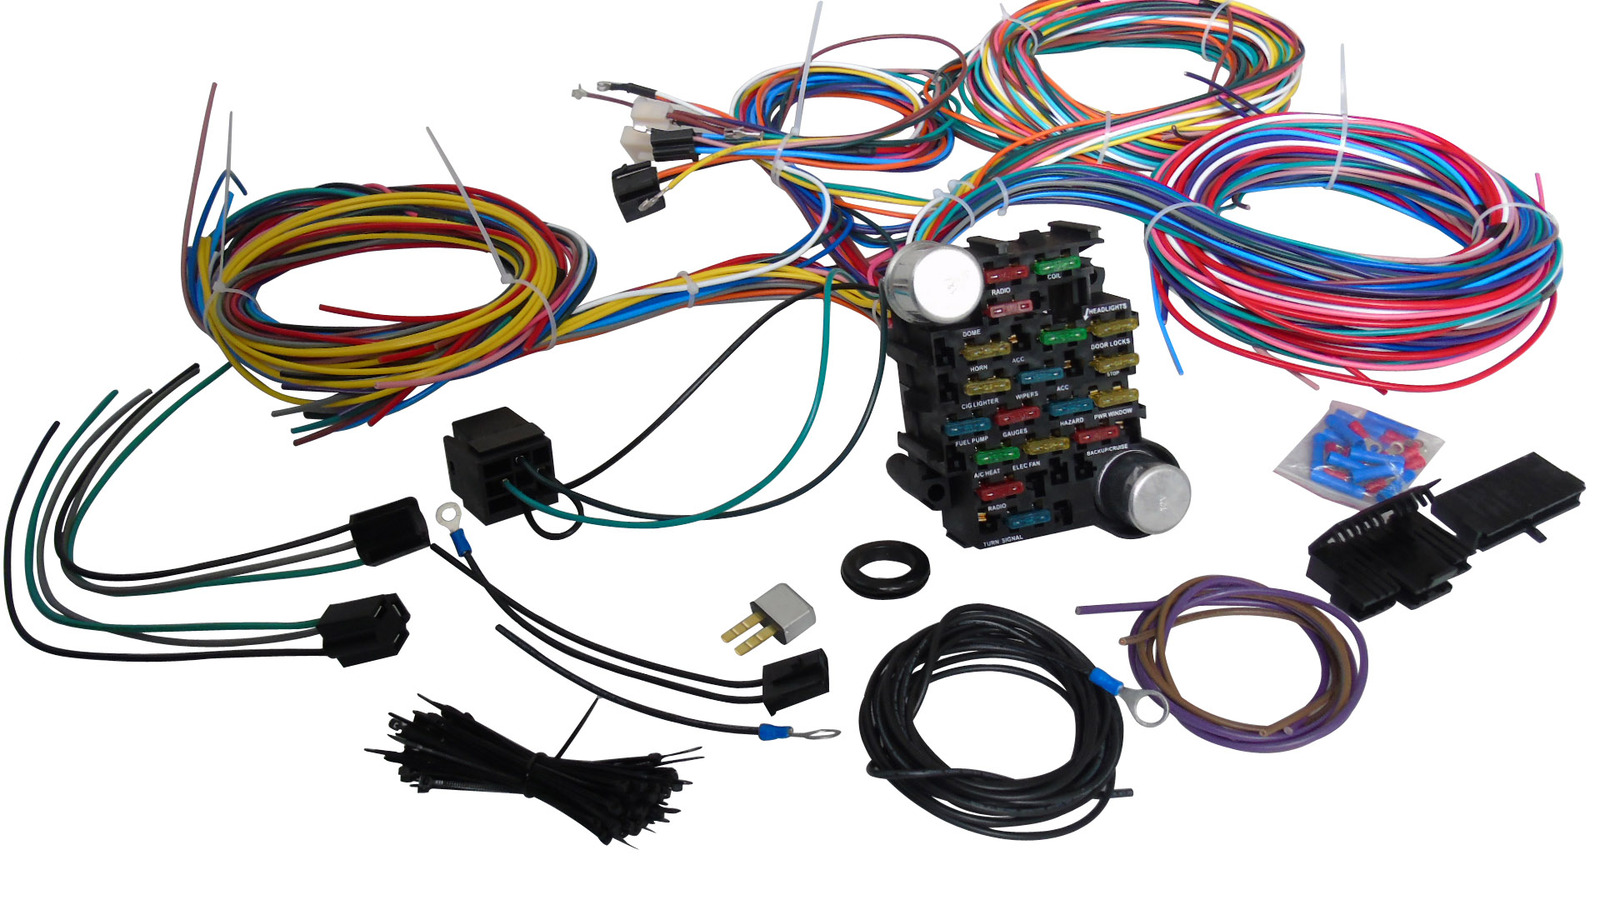 a team performance 21 standard circuit universal wiring harness rh swperformanceparts net universal wiring harness 20-circuit universal wiring harness labeled